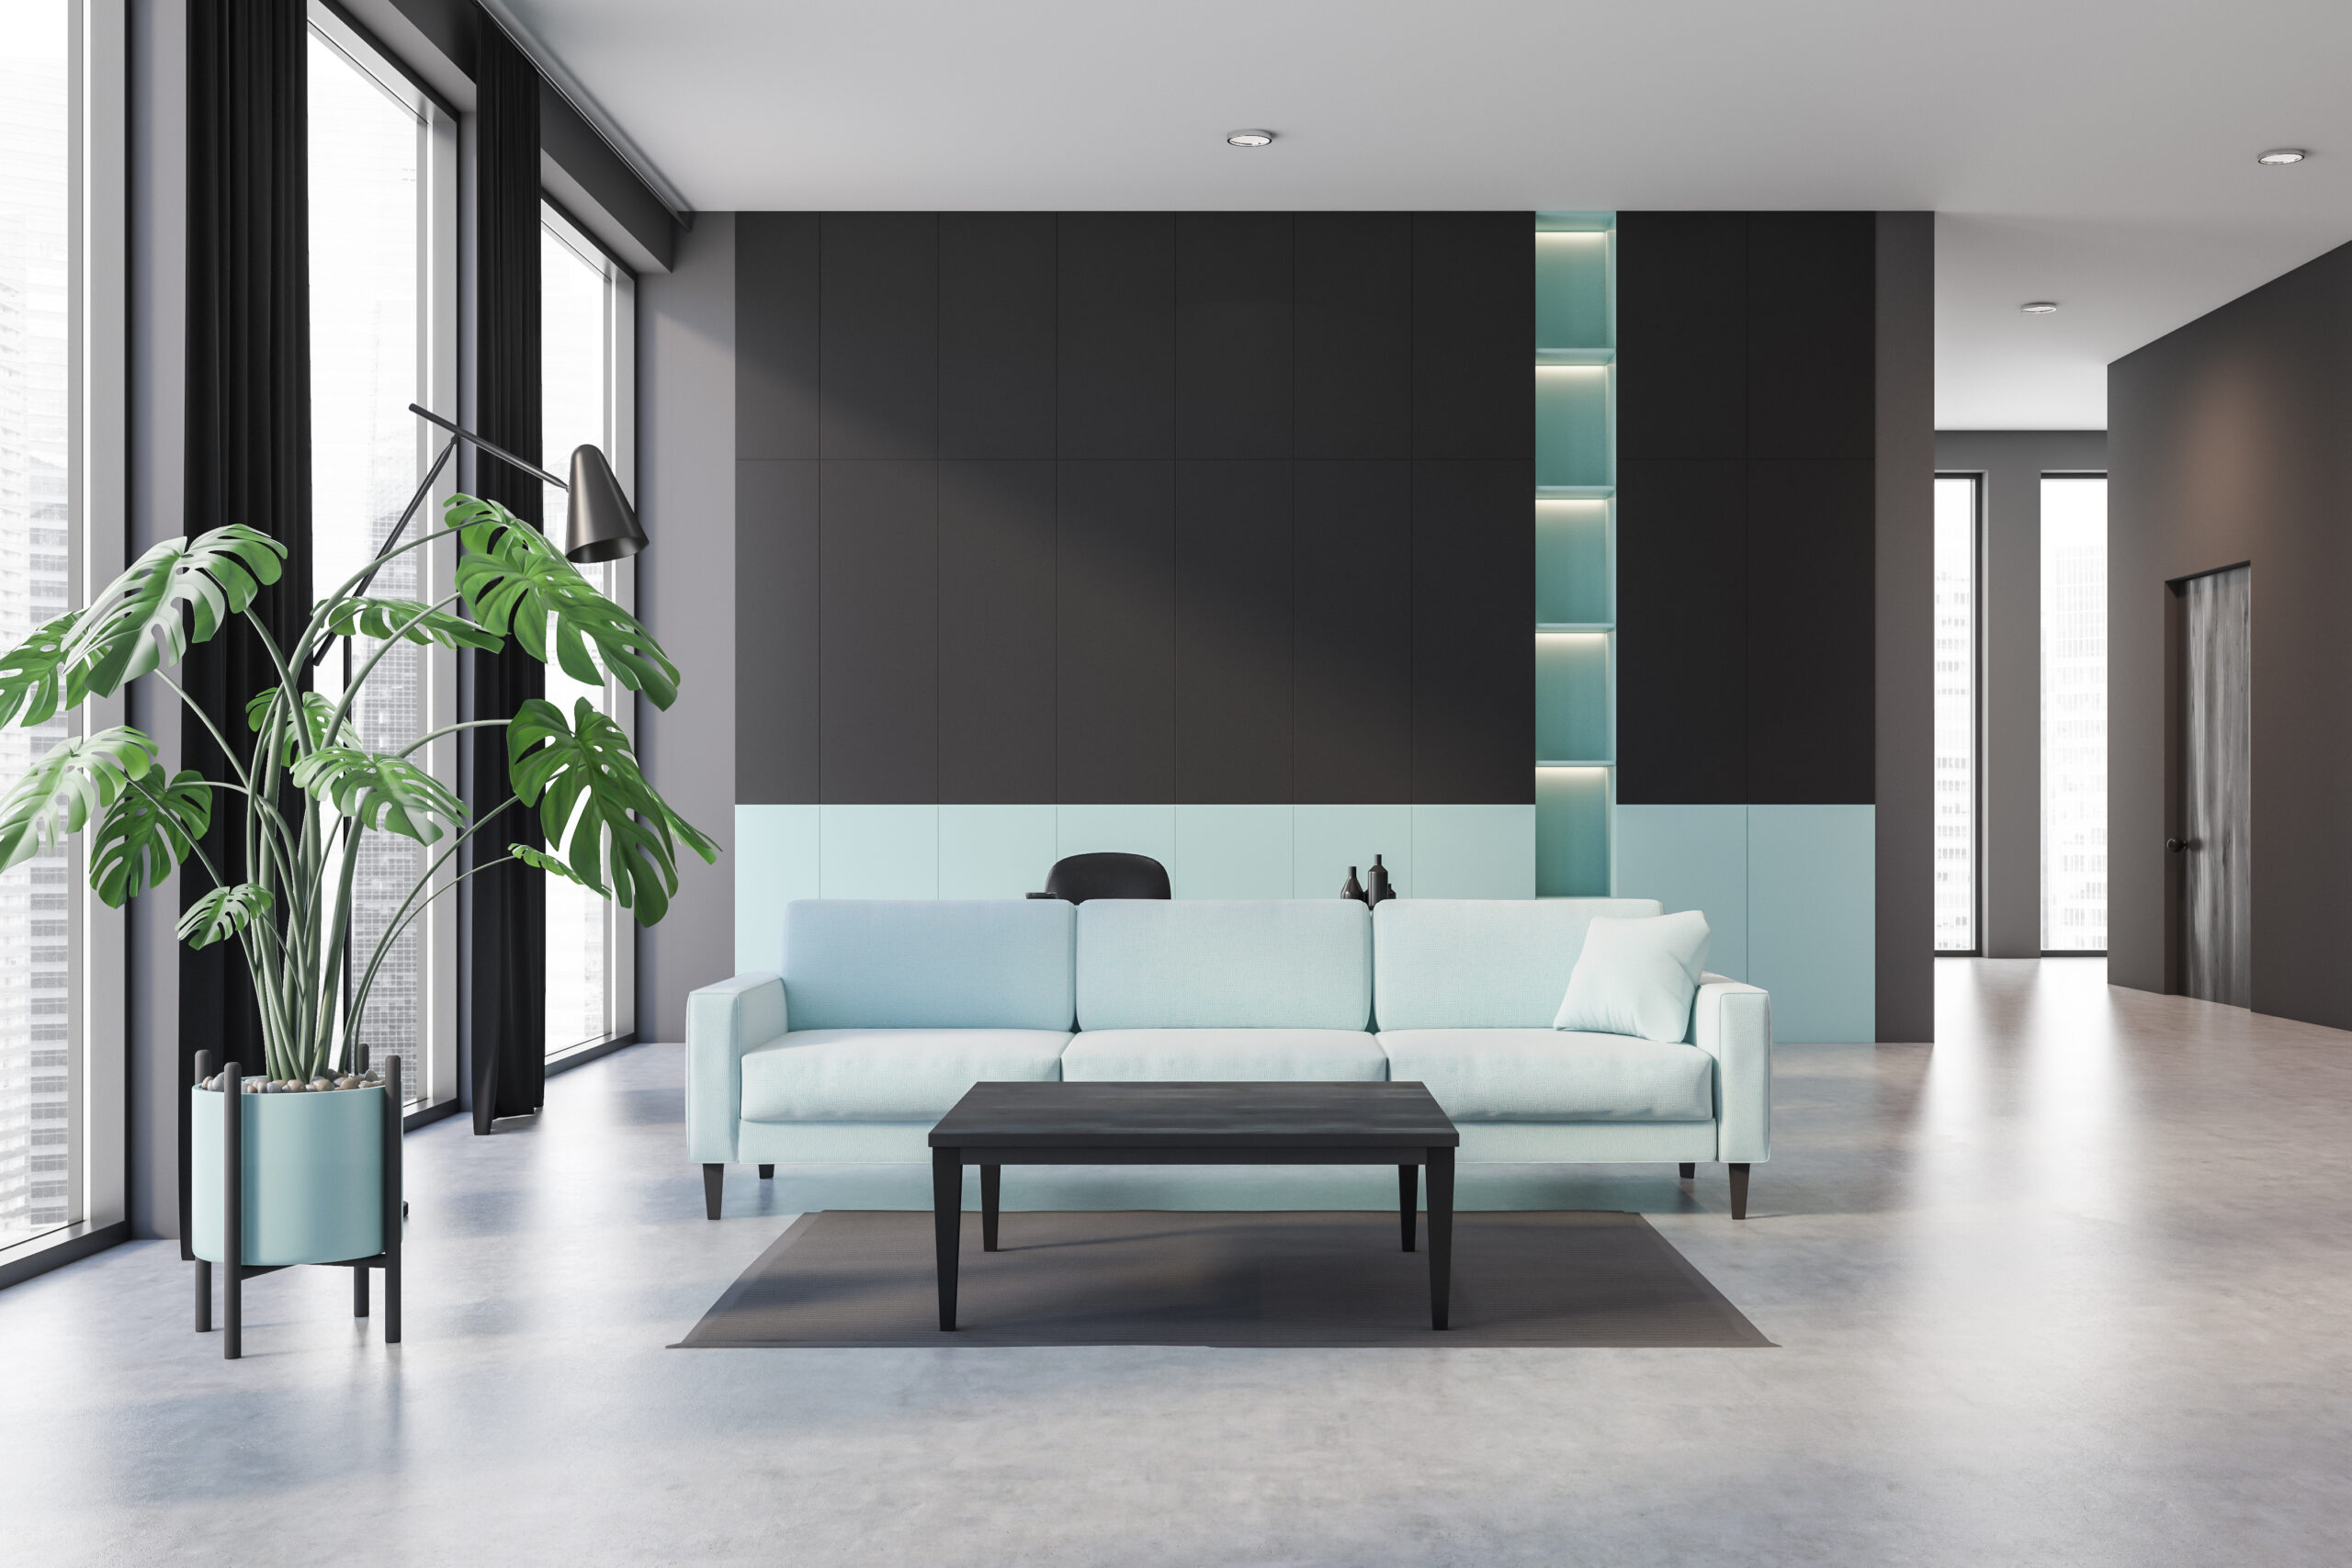 Interior of stylish living room with black and green walls, concrete floor, green sofa and coffee table. 3d rendering